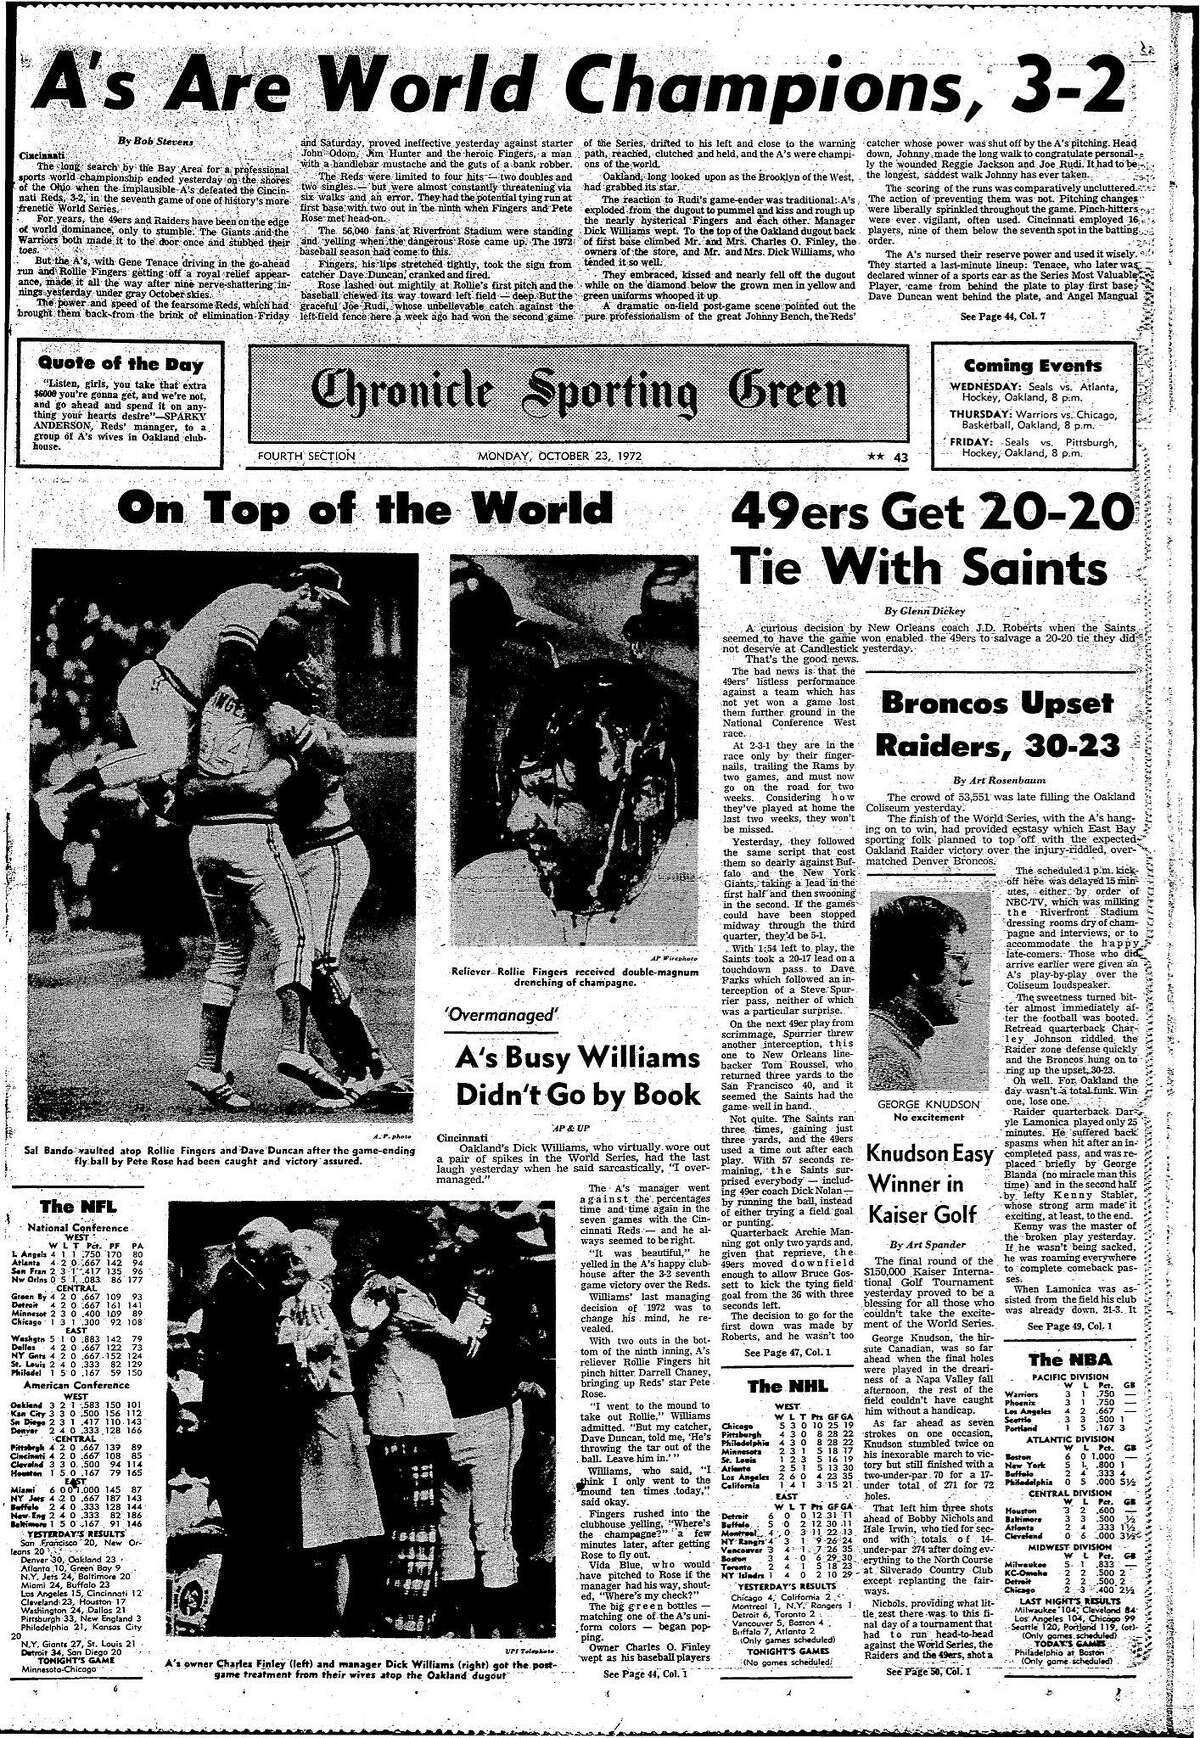 1972 World Series between the Oakland A's vs the Cincinnati Reds Historic Chronicle Front page, 10/23/1972